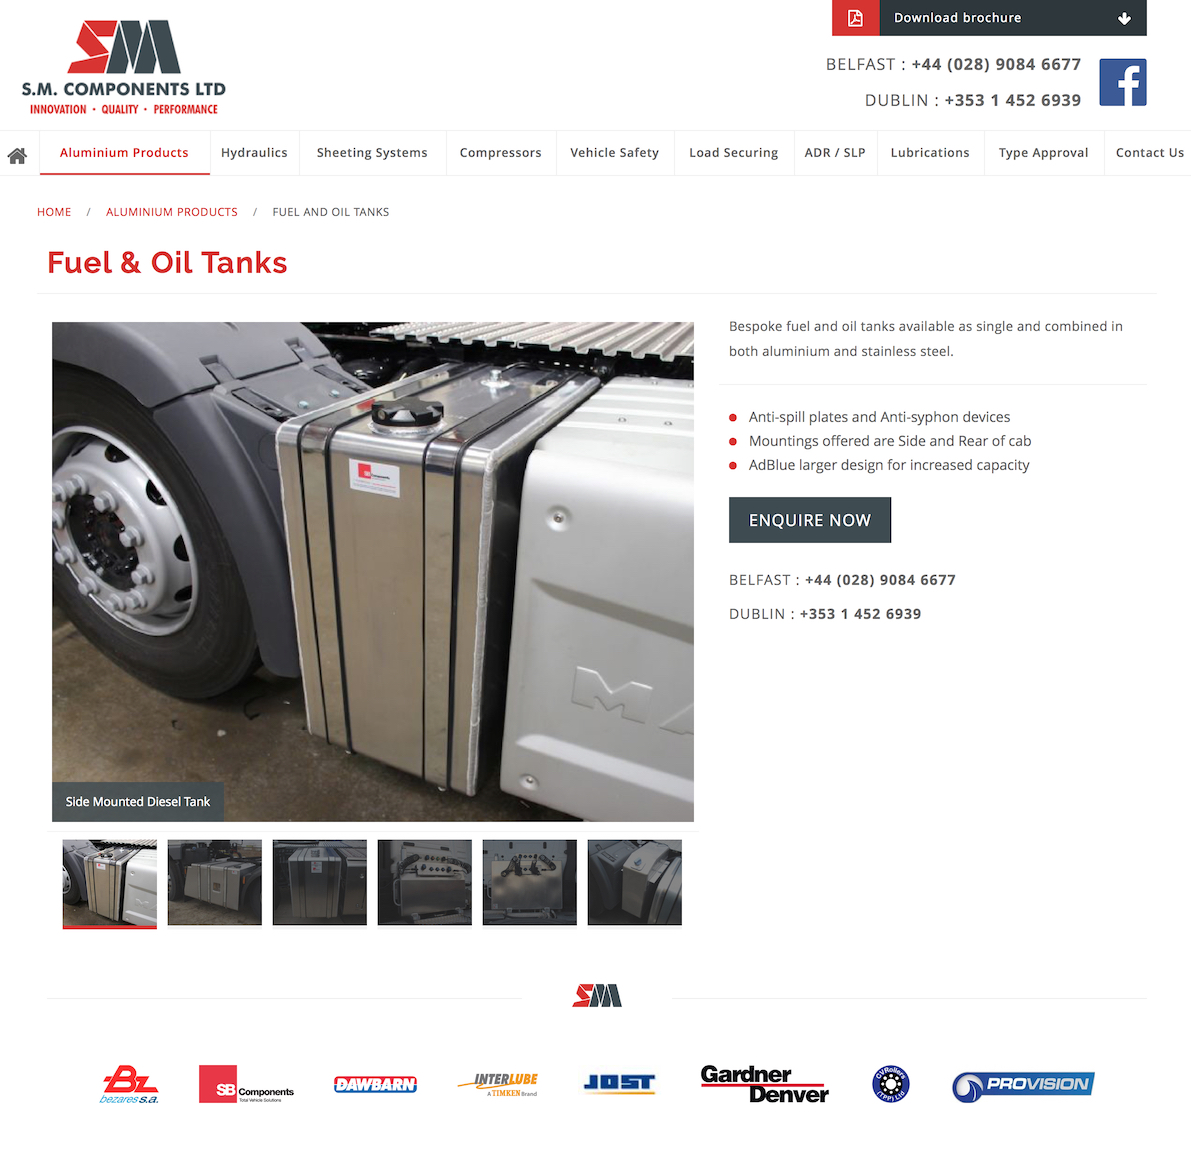 Fuel and Oil Tanks for sale at SM Components